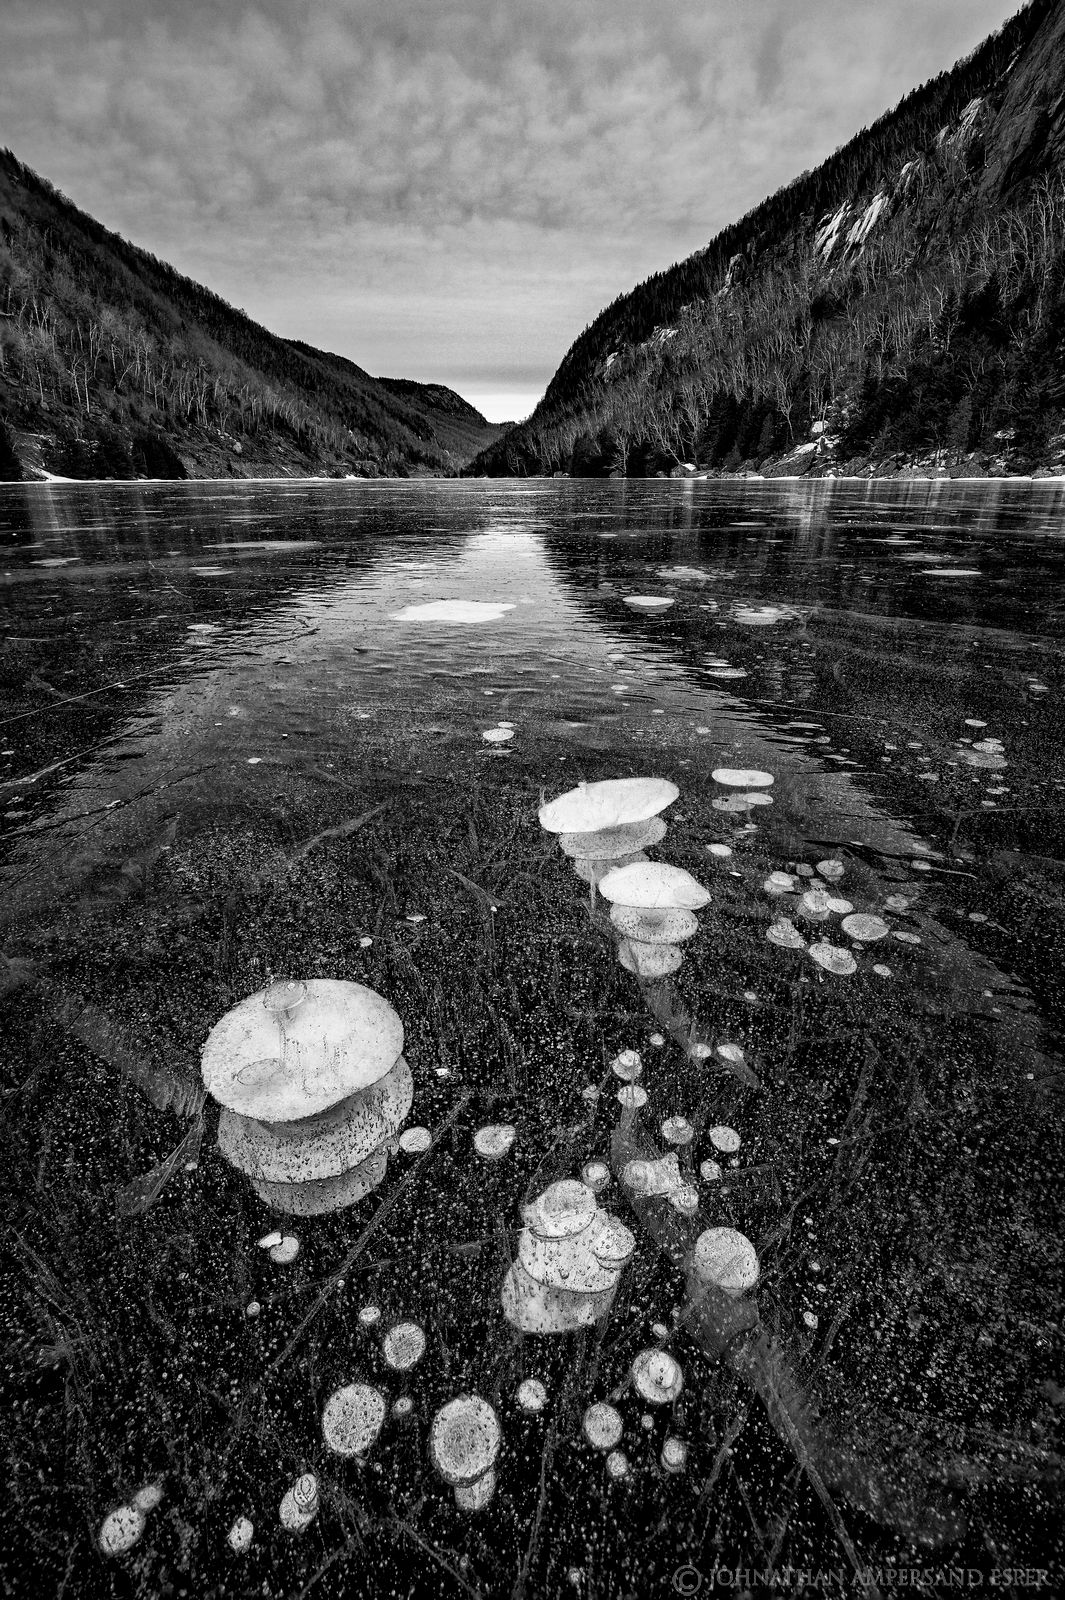 Cascade Lakes,Lower Cascade Lake,ice cracks,ice bubbles,bubbles,methane bubbles,vertical,December,2019,ice,frozen,black and white...